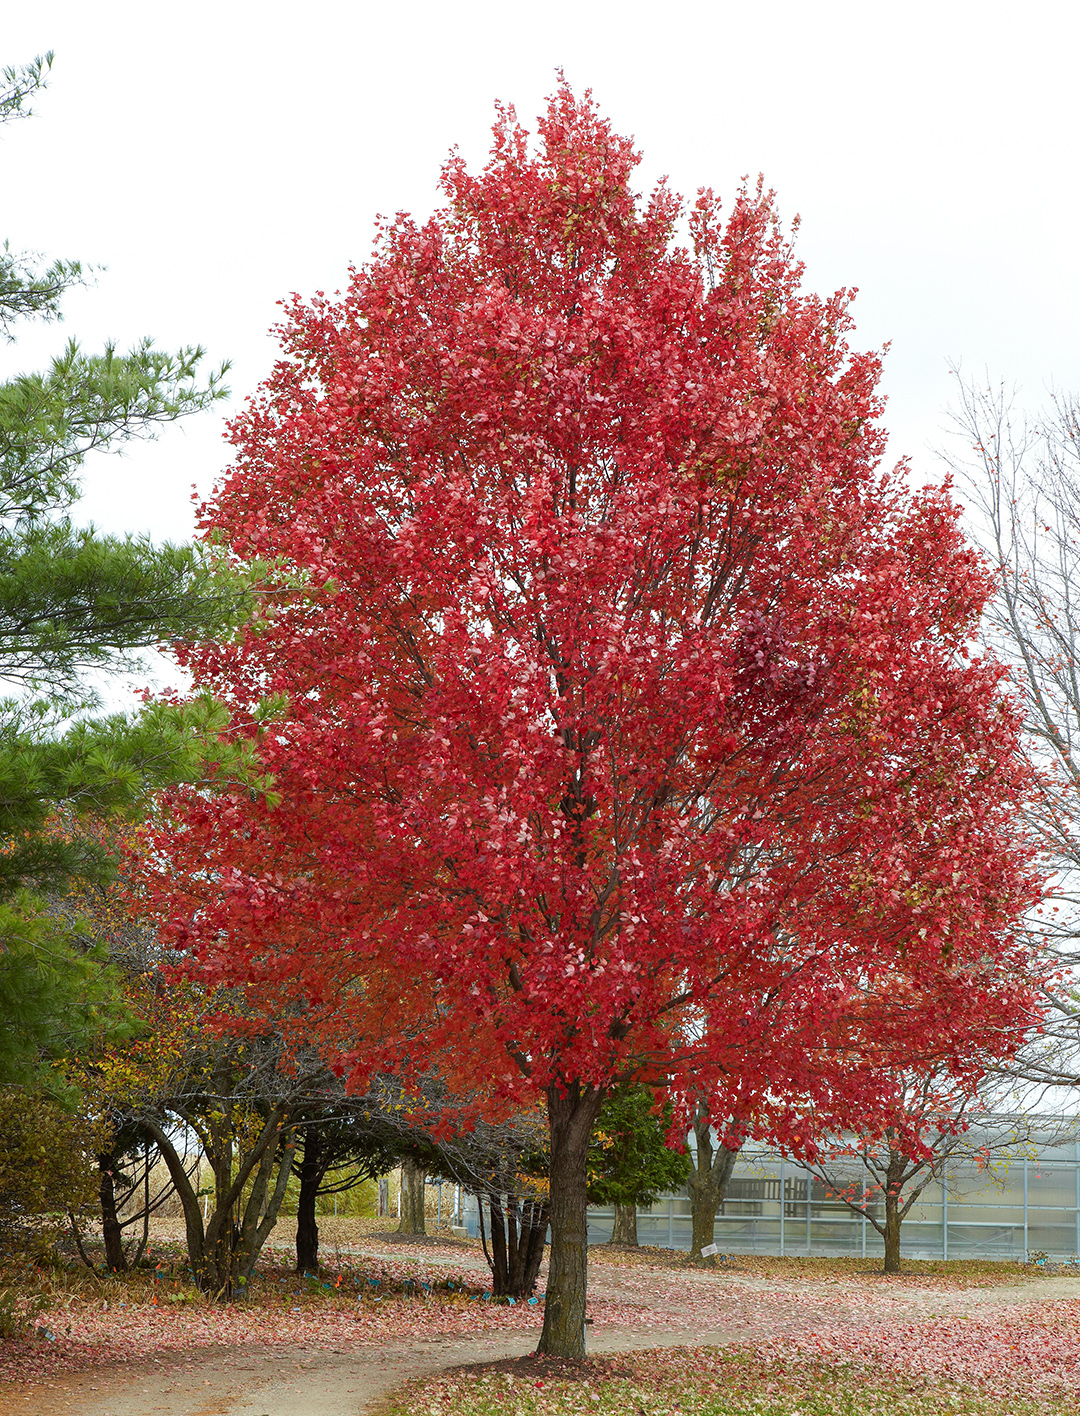 red maple acer rubrum tree along road